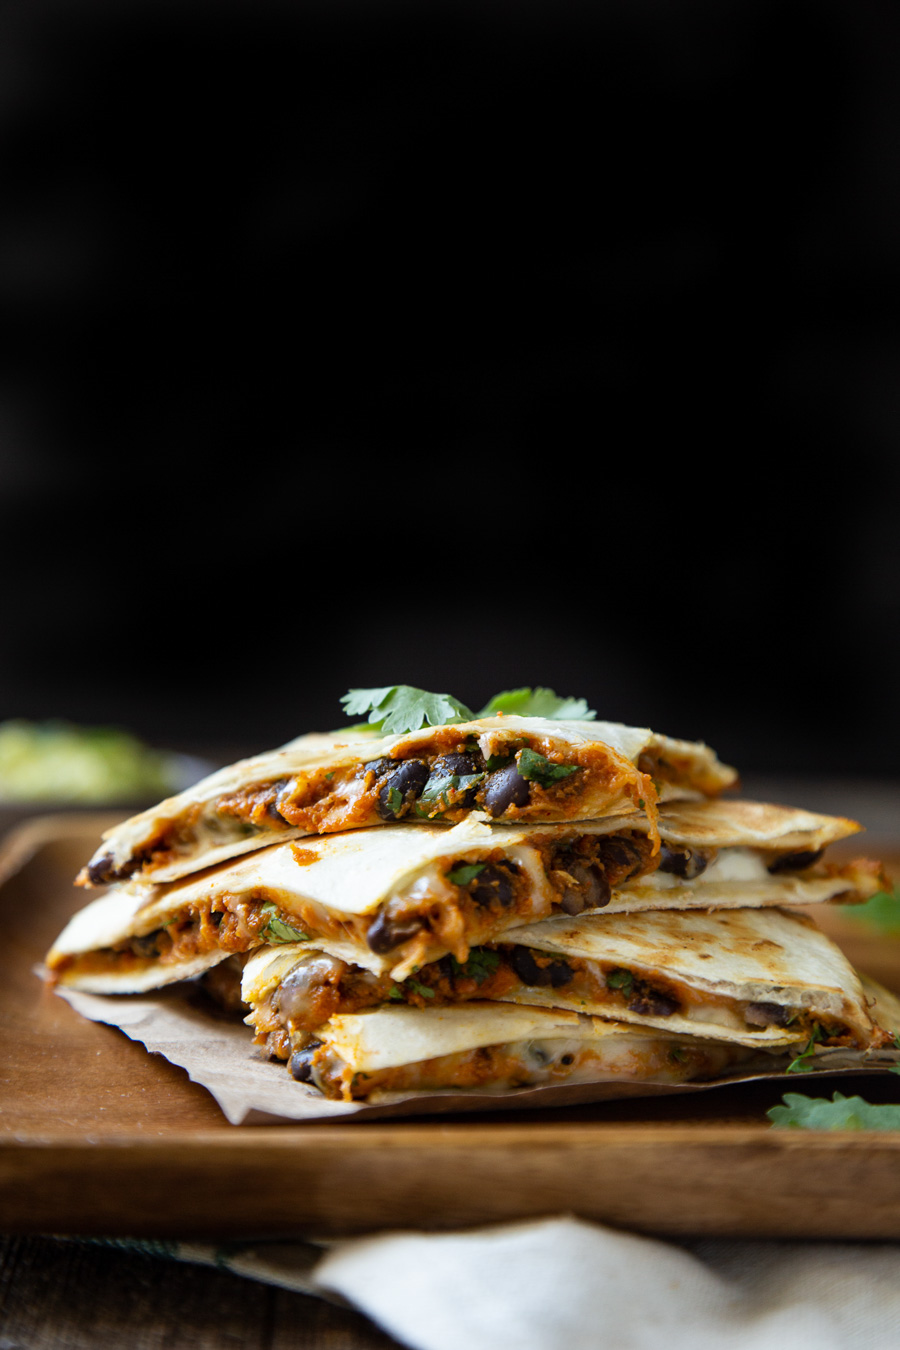 Pumpkin Quesadillas - Savory Pumpkin Recipes